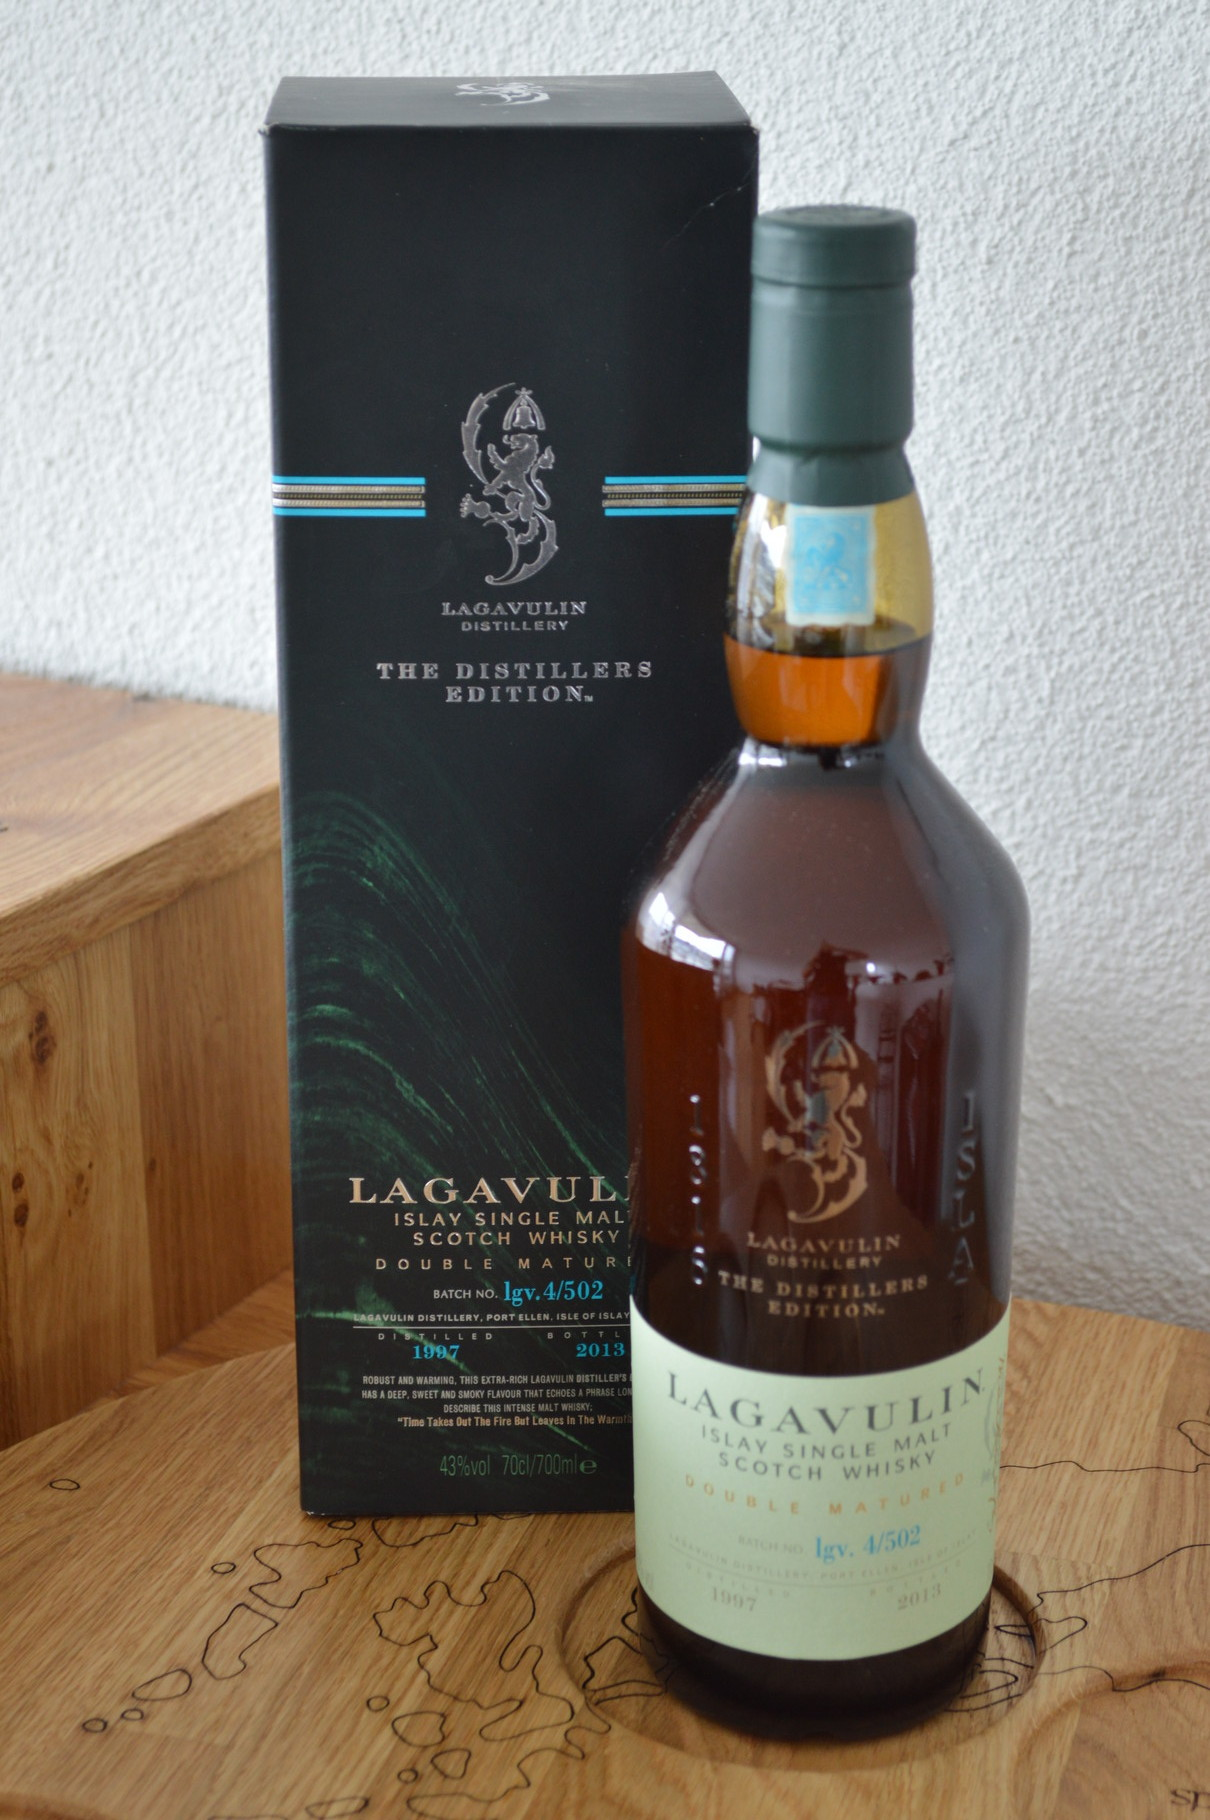 ISLAY - Lagavulin - Aged: 16 - Bottler: Original - 70cl - 43% - The Distillers Edition